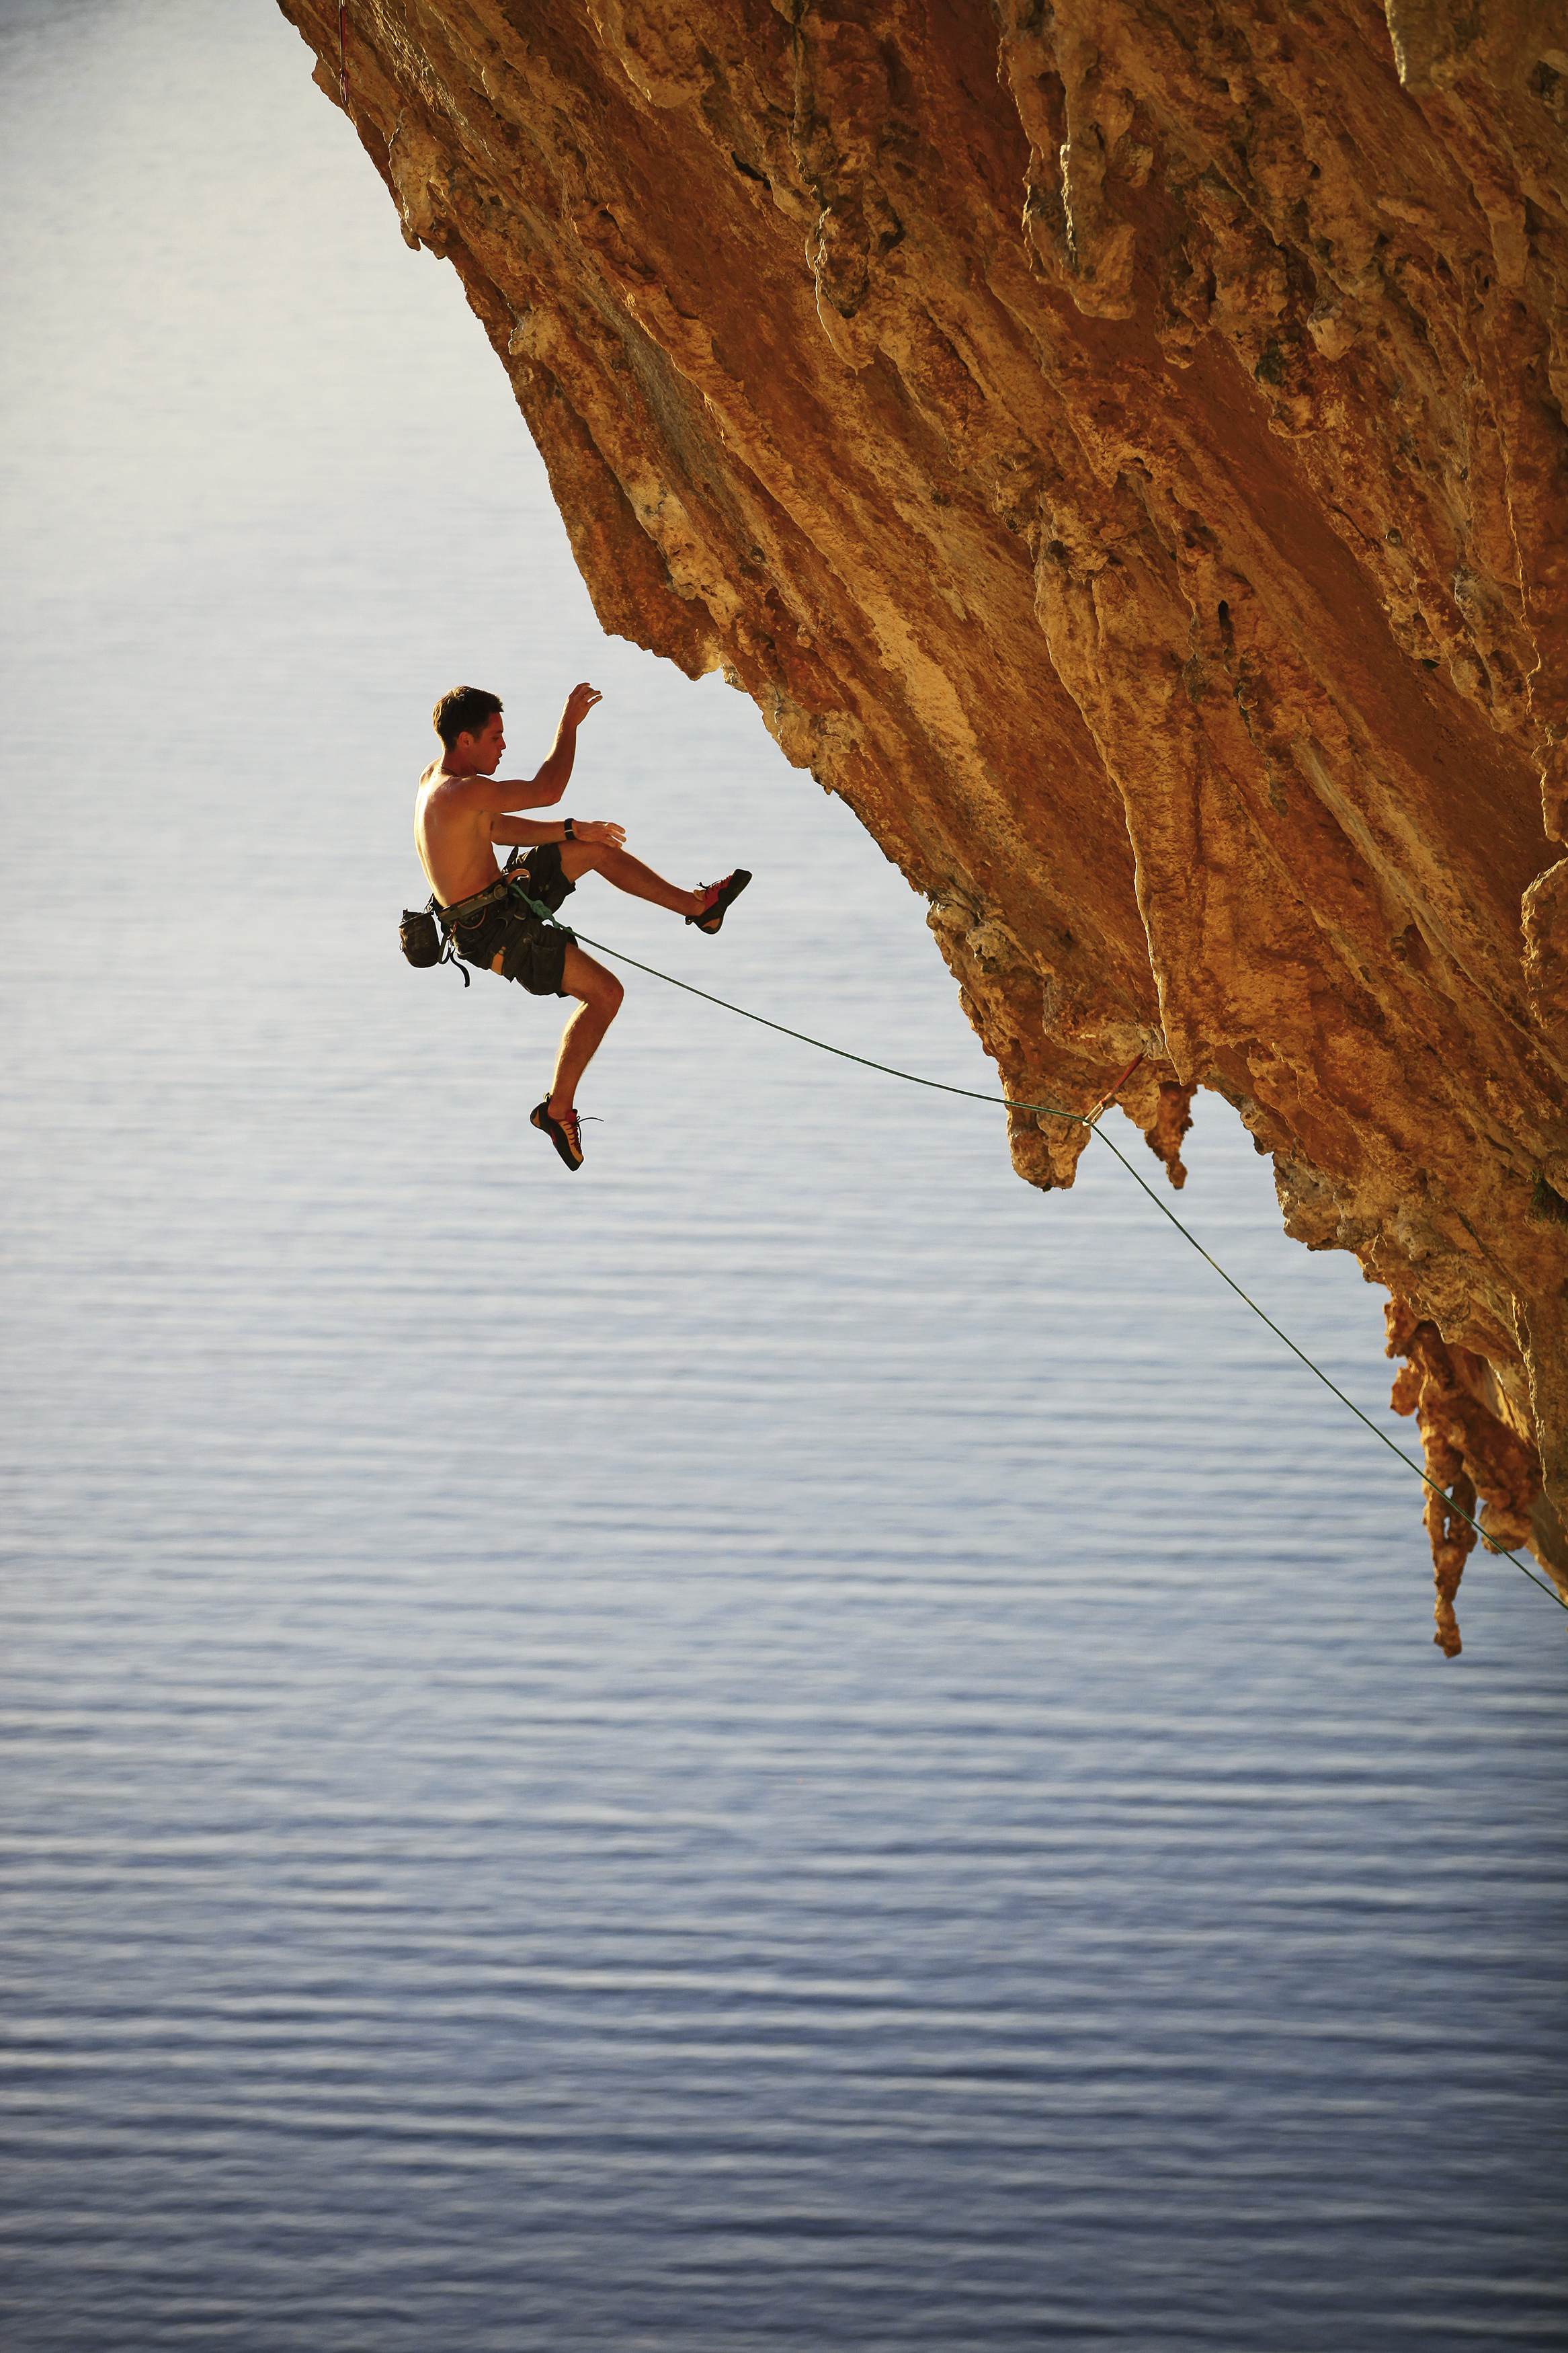 Big Whipper, Falling Off Cliff